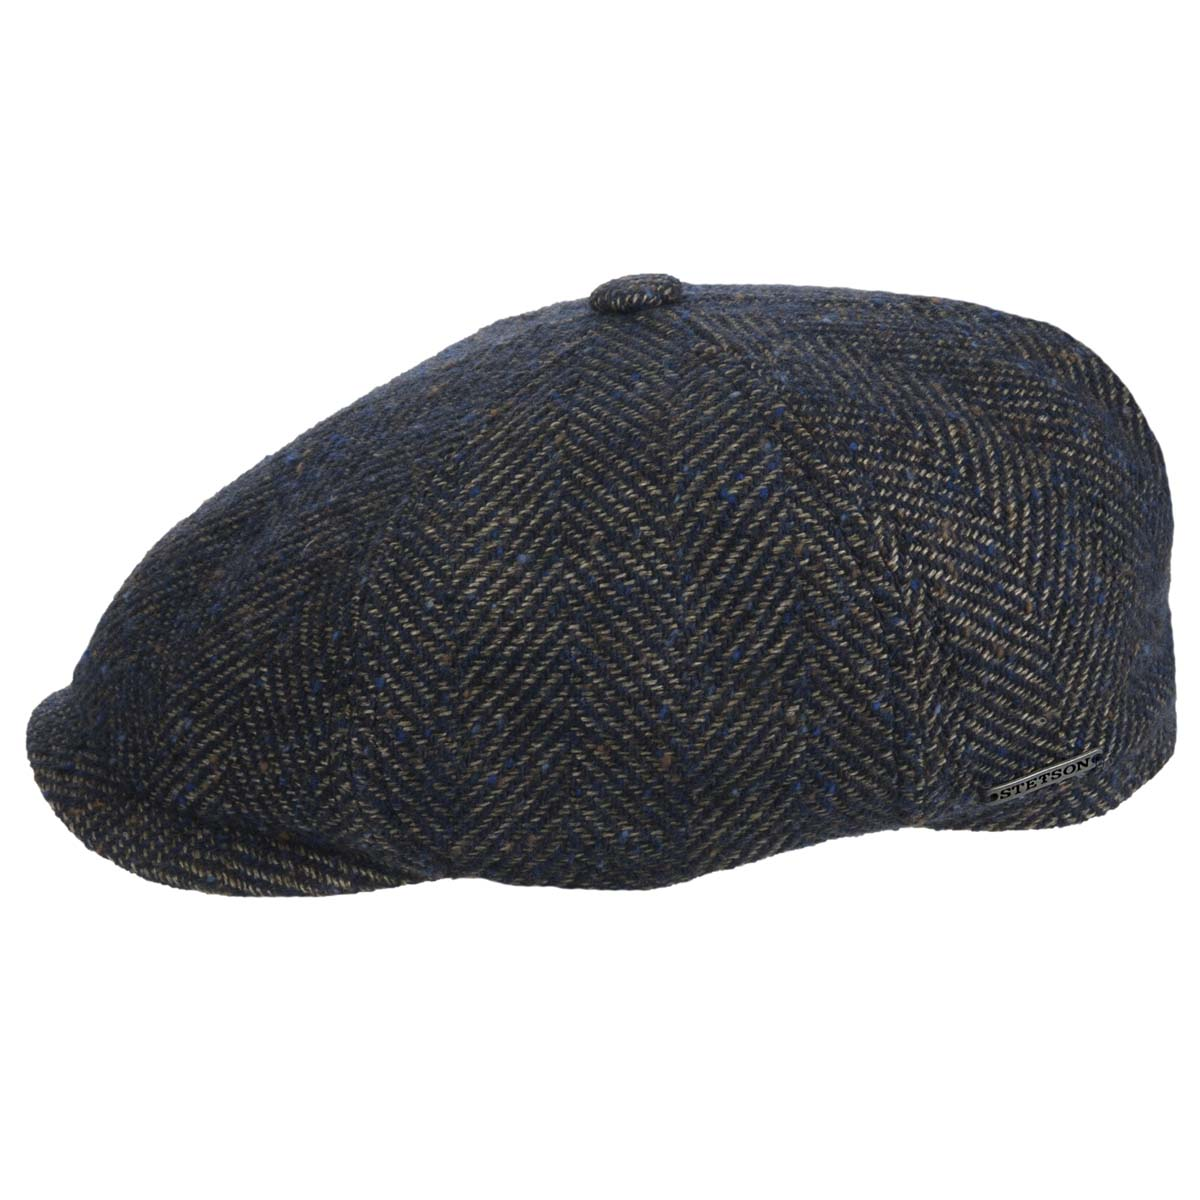 berretto uomo flat cap Oregon Wool by STETSON ... c72b0dd942af